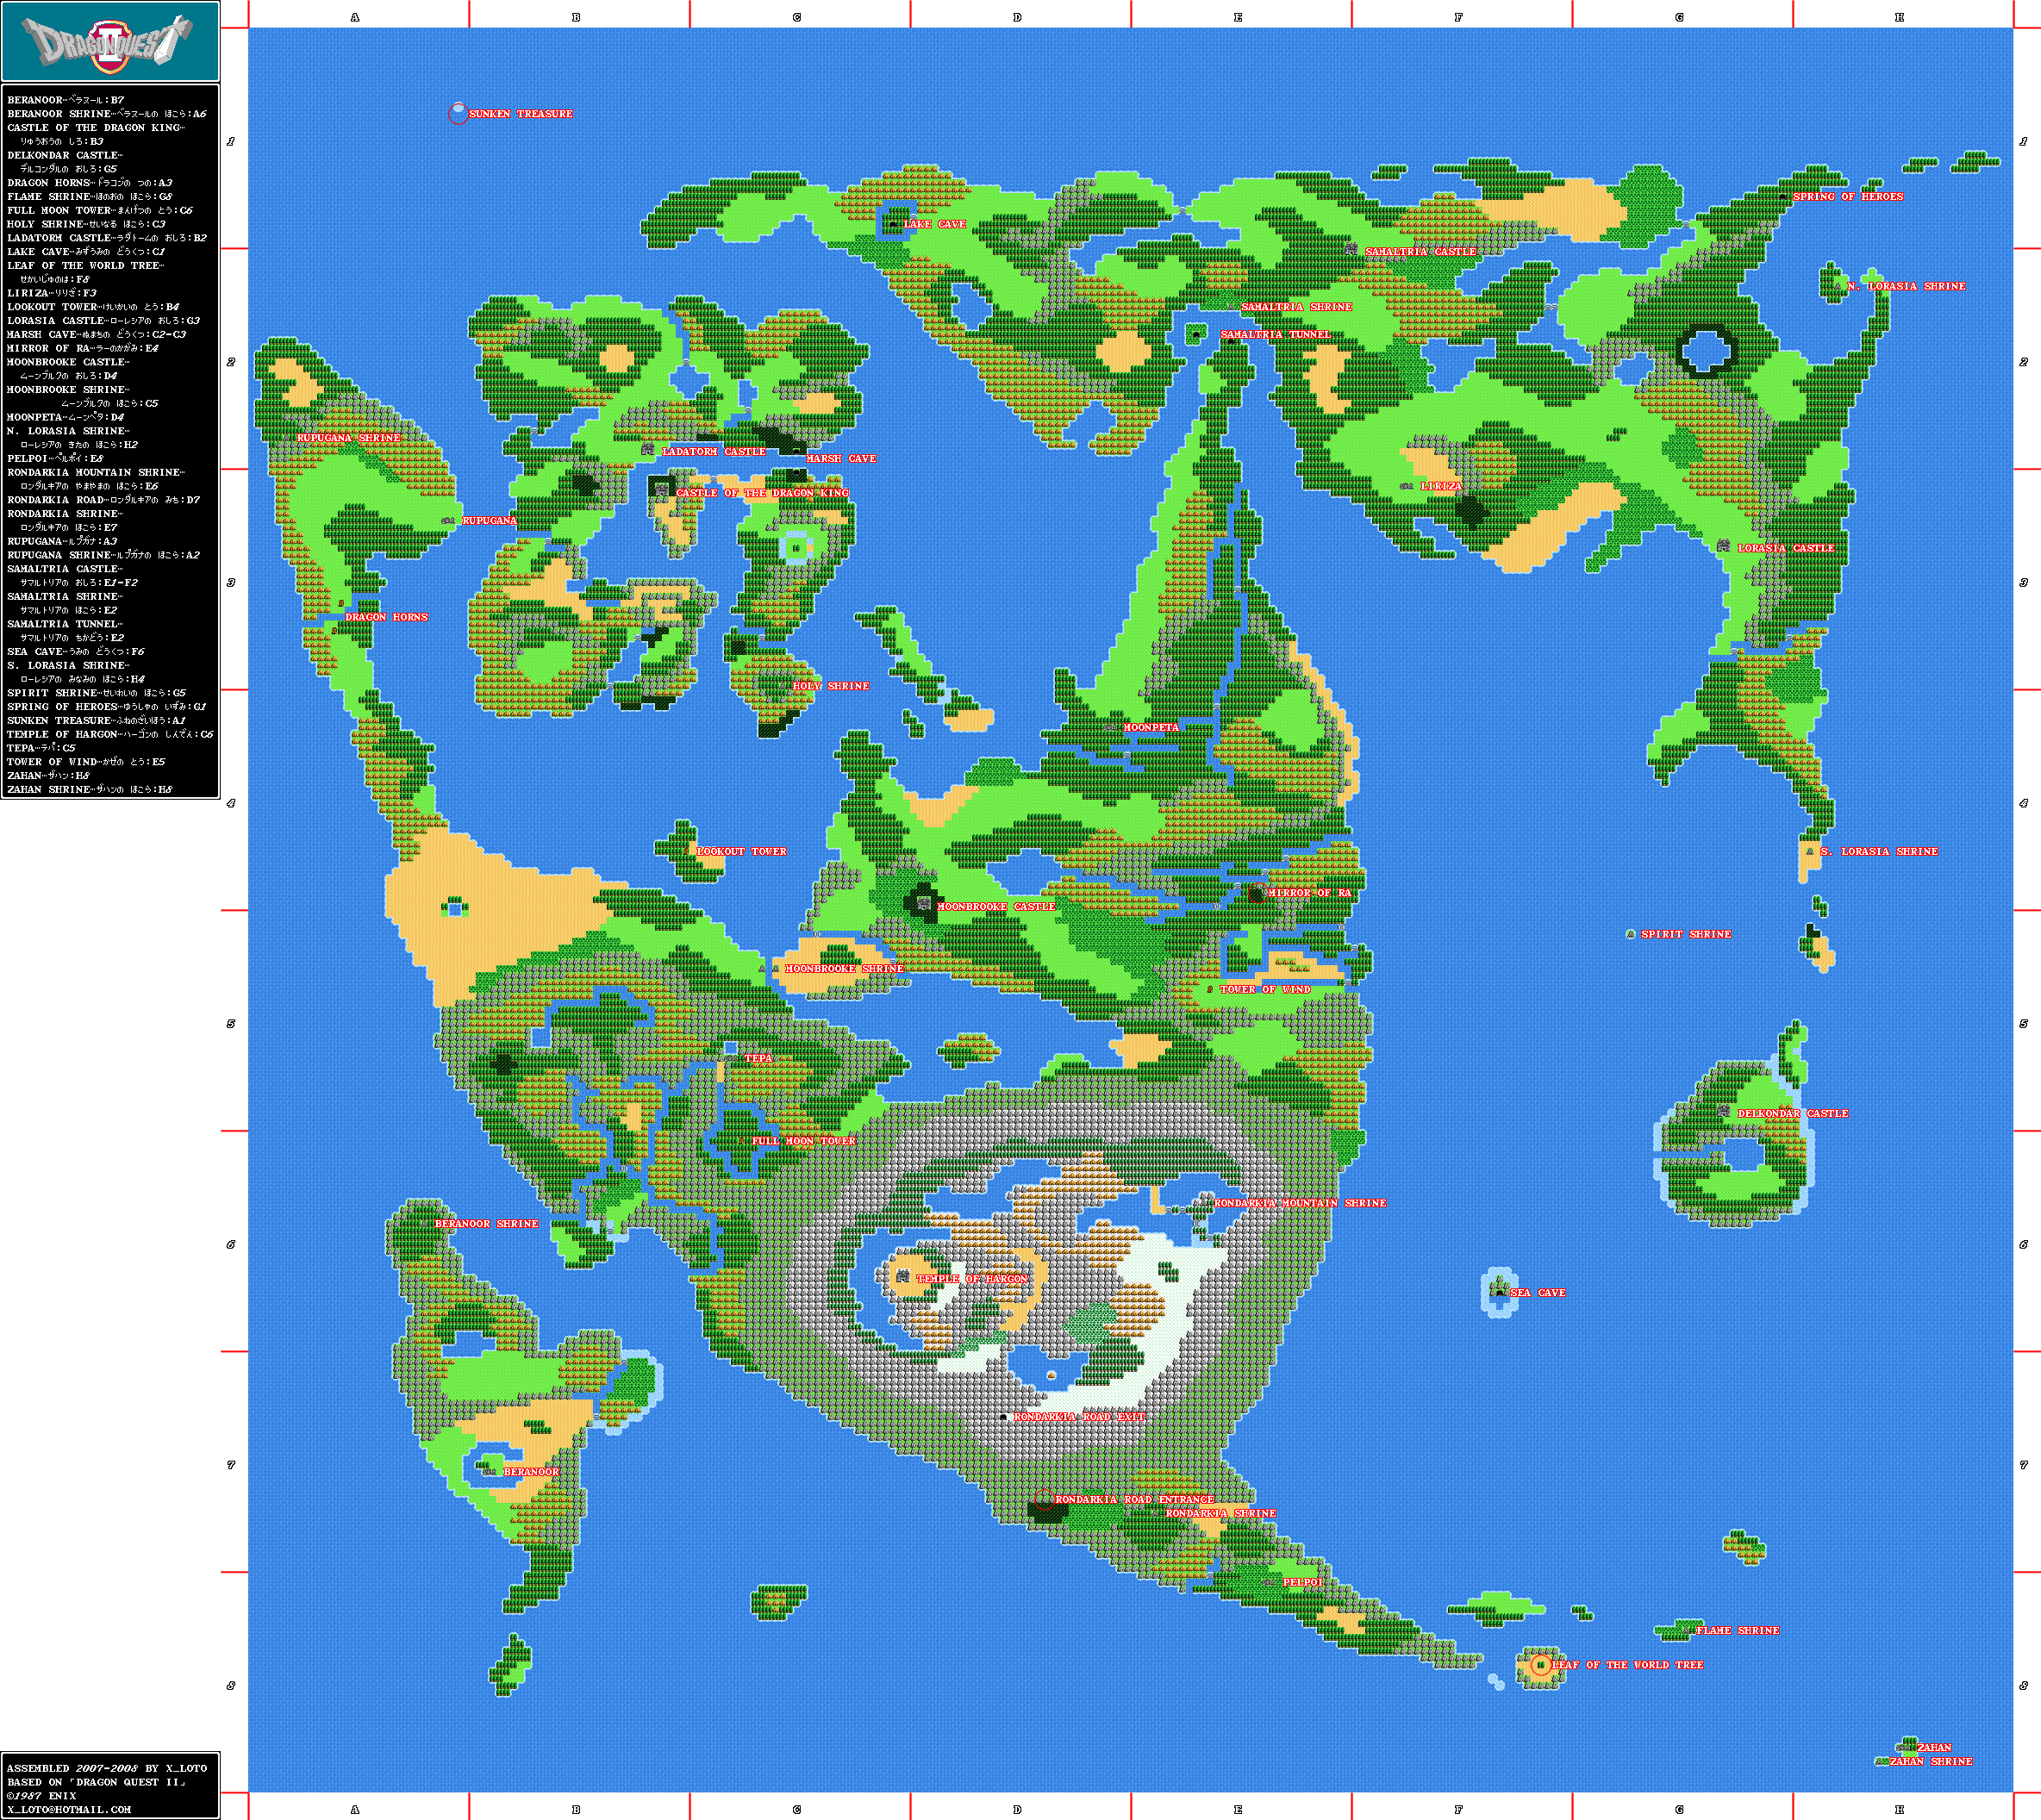 dq2_worldmap Dragon Warrior Map on just cause 2 map, the legend of zelda, double dragon, dragon quest monsters: joker 2, dragon quest viii: journey of the cursed king, dragon quest, crash bandicoot 2 map, dragon quest vi: realms of revelation, super mario brothers 2 map, ducktales 2 map, breath of fire 2 map, dragon quest v: hand of the heavenly bride, dark souls 2 map, jurassic park 2 map, dragon mountain map, crusader kings 2 map, dragon warrior iii, asia after world war 2 map, dragon quest world map, call of duty 2 map, dragon quest 4 map, indiana jones 2 map, forza horizon 2 map, chrono cross, adventure island 2 map, dragon tree map, dragon quest ix: sentinels of the starry skies, castlevania 2 map, wario land 2 map, infinity blade 2 map, dragon warrior monsters,